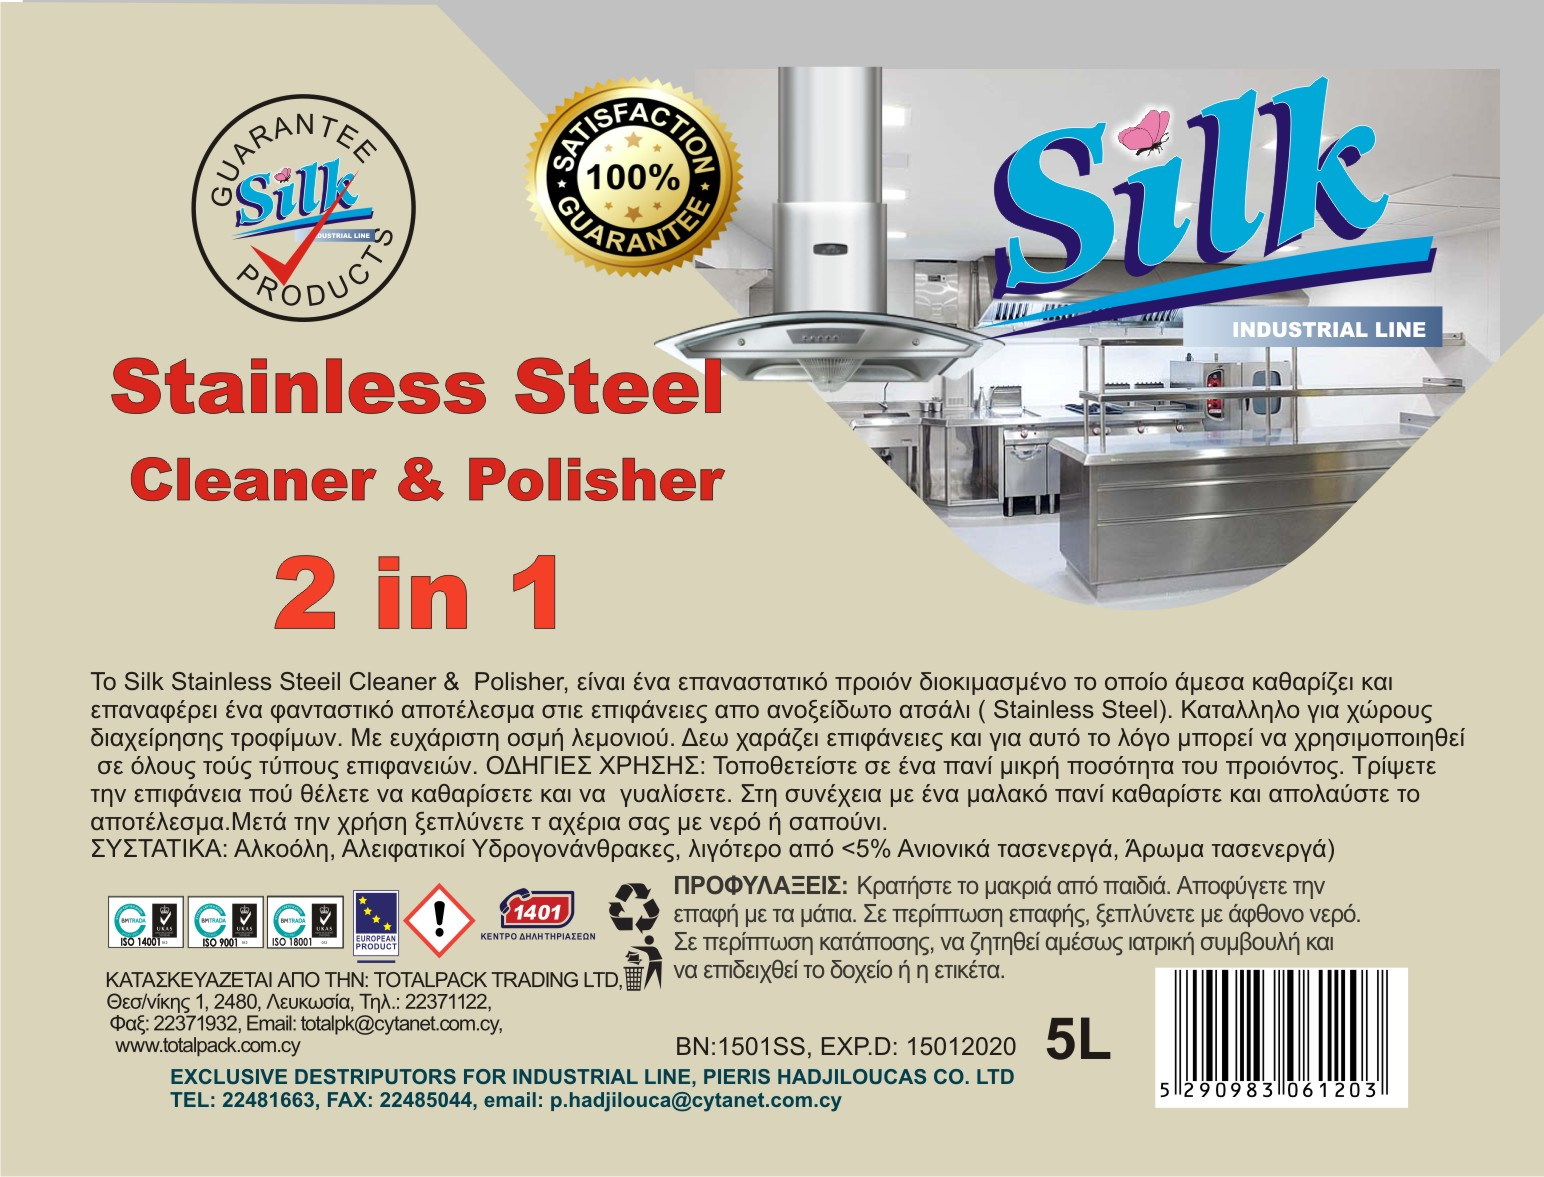 Stainless Steel Cleaner and Polisher 2in1